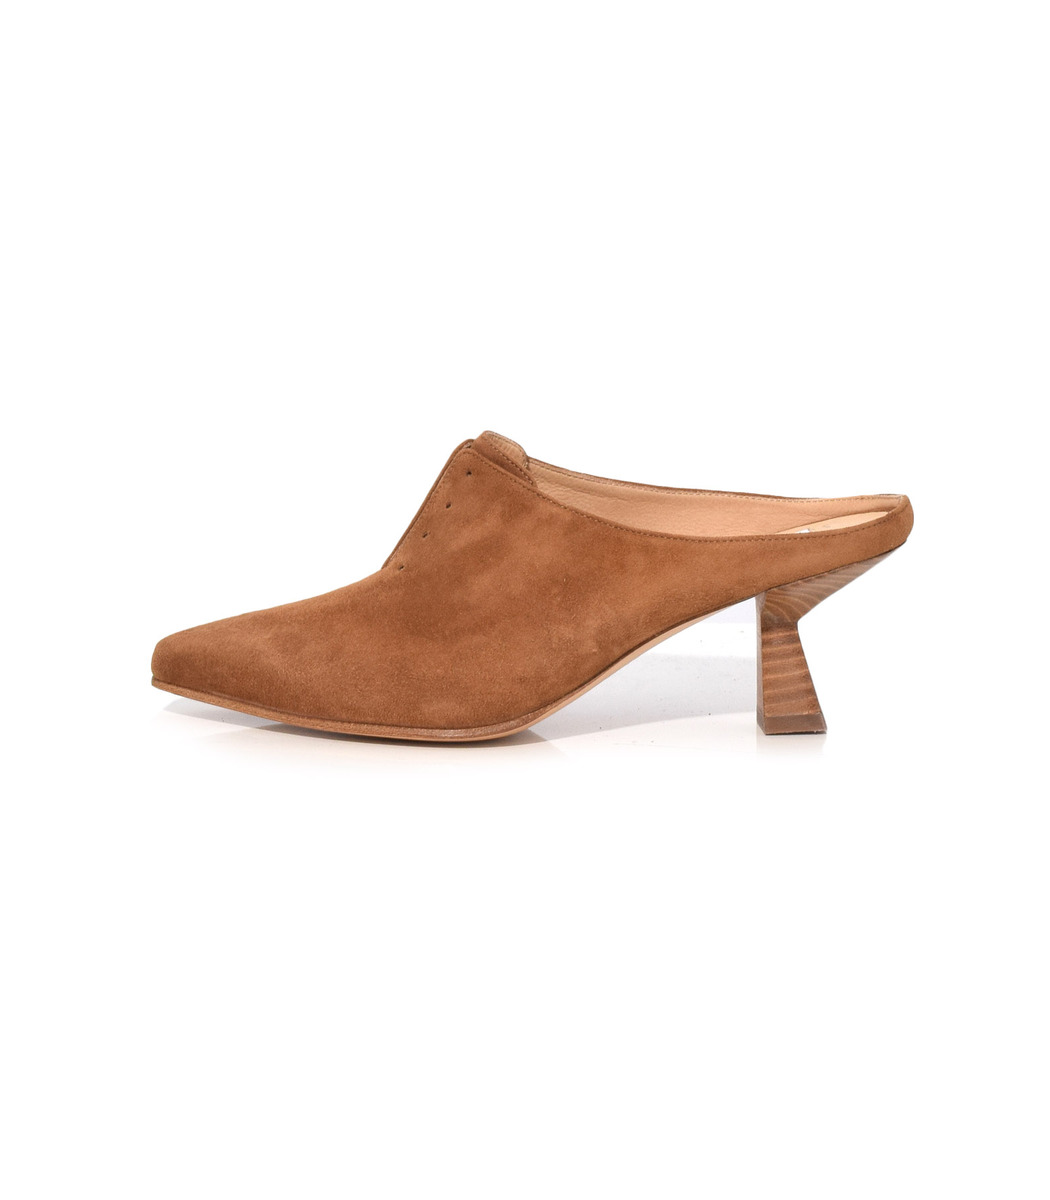 sast cheap online with paypal sale online Gabriela Hearst Antoinette Suede Mules free shipping low cost best deals outlet where to buy LYdwwd